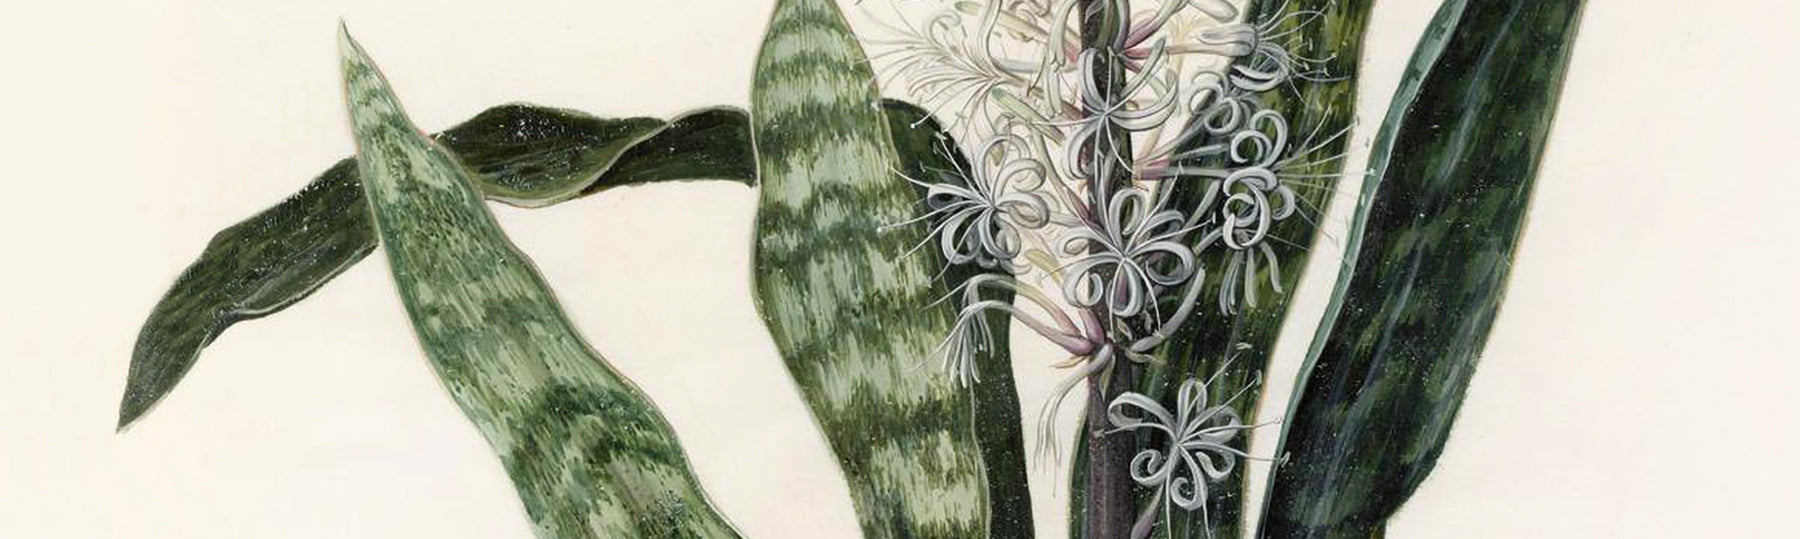 Vintage botanical paintings and illustrations from Attica Press